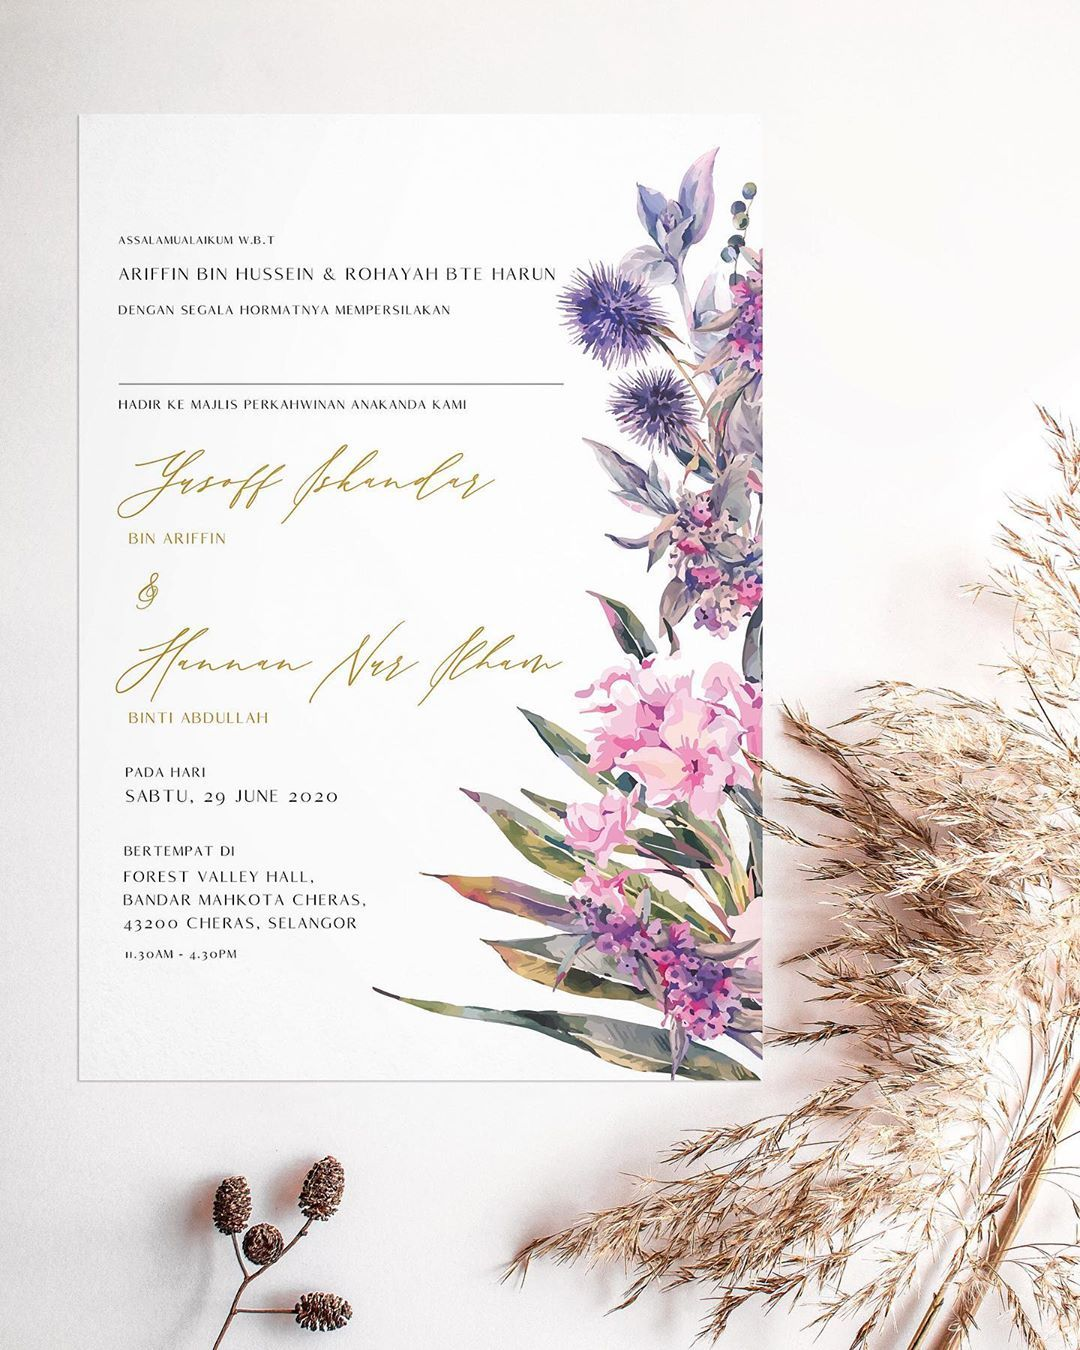 77 Likes 3 Comments Wedding Event Stationery Nigina Art On Instagram New Design To Order Kindly Pm Whatsapp Us At In 2020 Wedding Cards Wedding Kad Kahwin